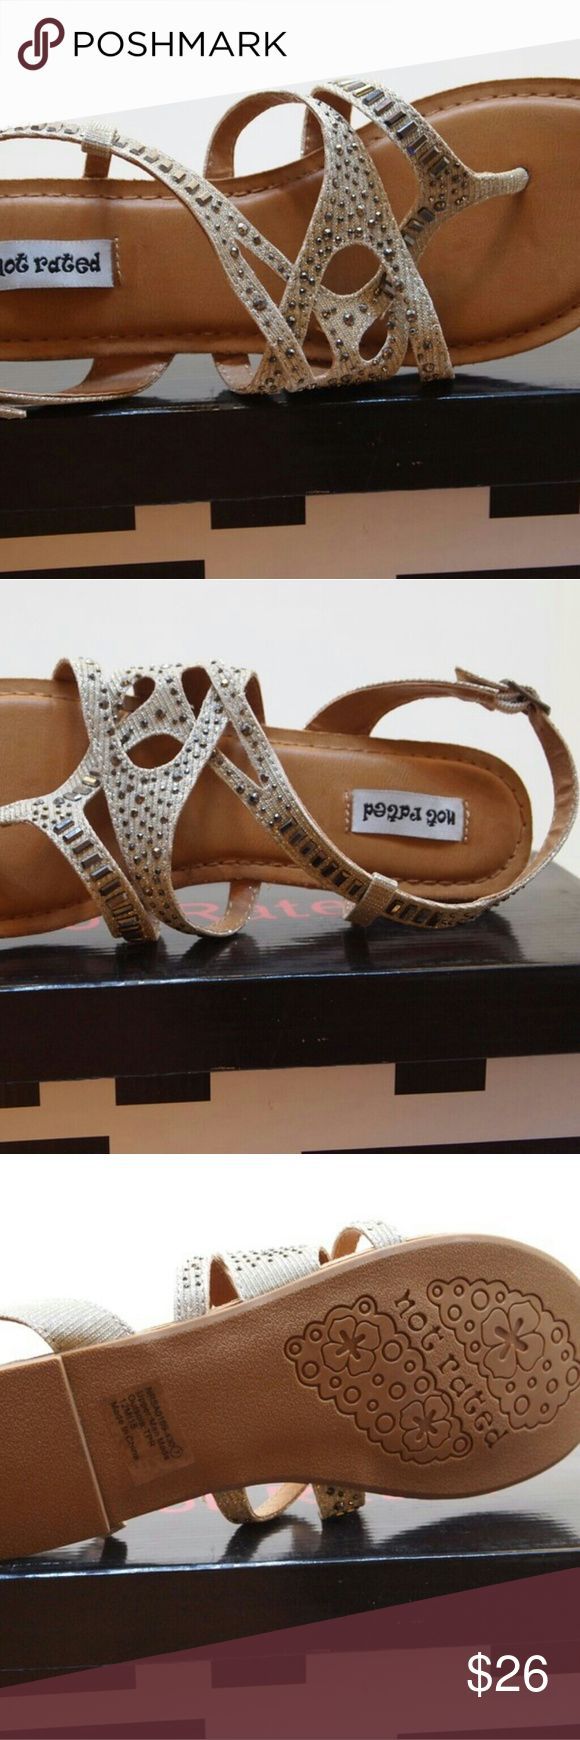 Women's sandals shoes basting nude spring summer New in box. Handling time is 3 to 5 days. Not Rated Shoes Sandals